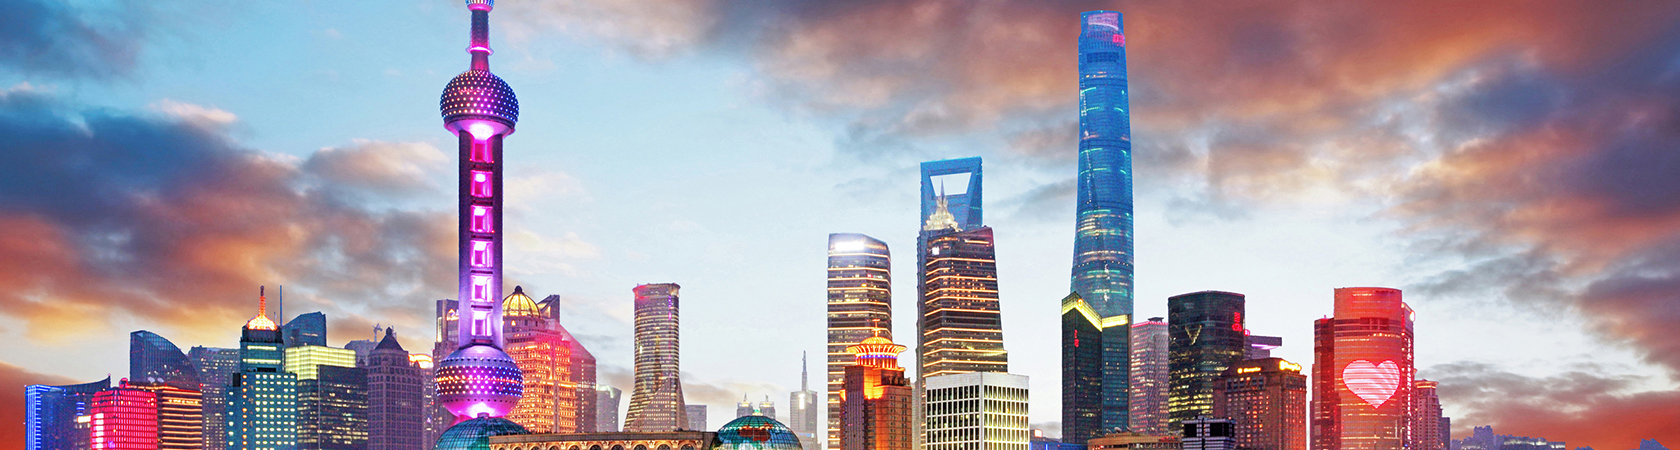 Admission conditions - MBA Digital marketing & Business EFAP Shanghai